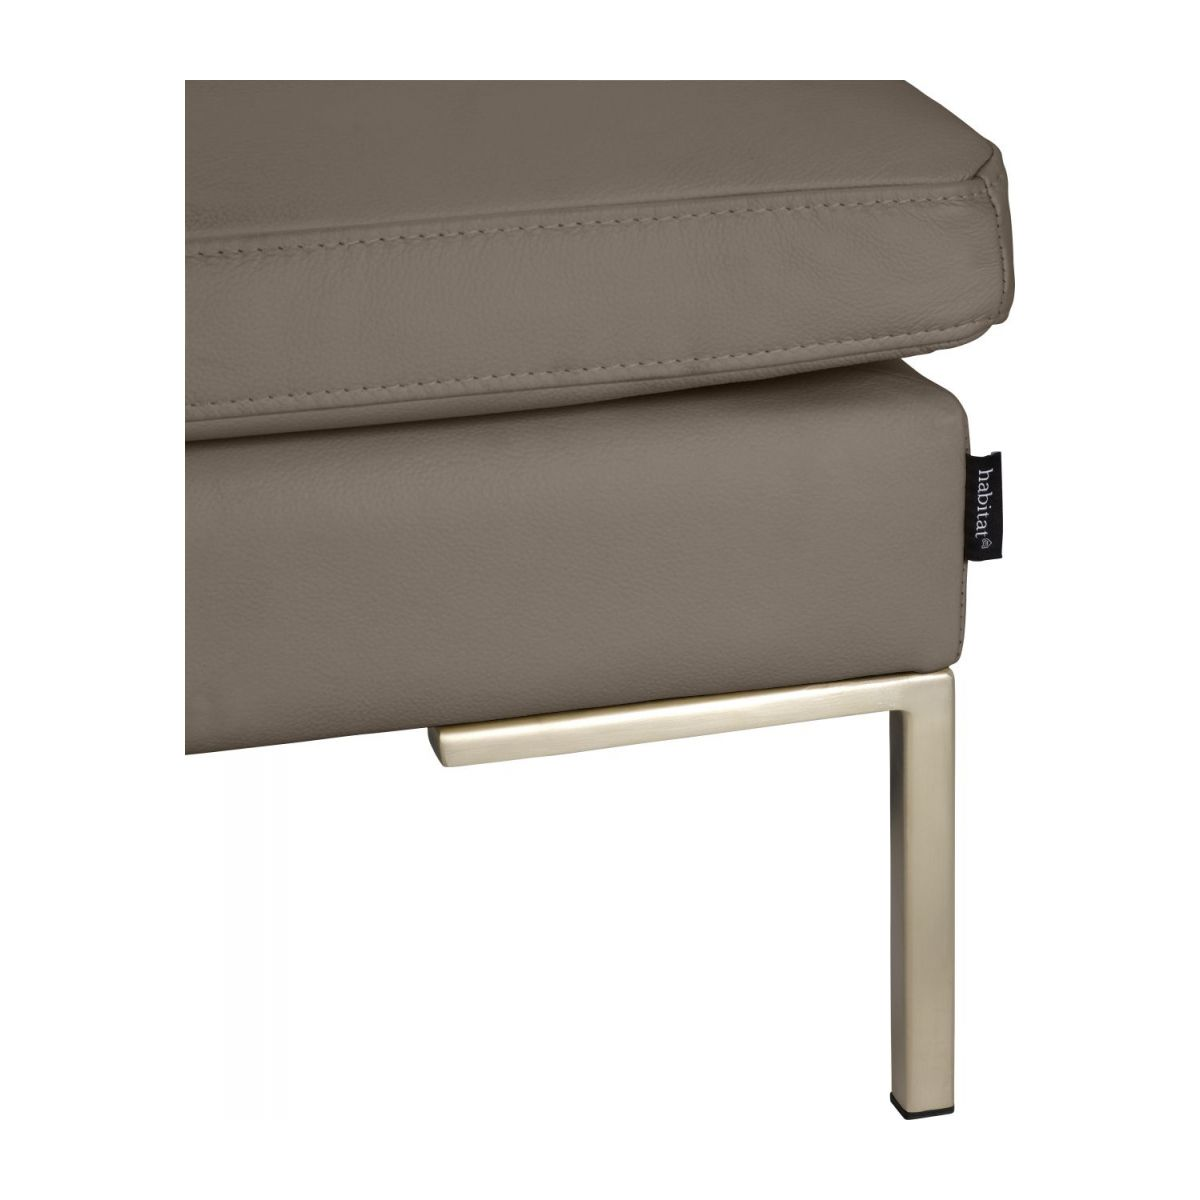 Footstool in Eton veined leather, stone n°5